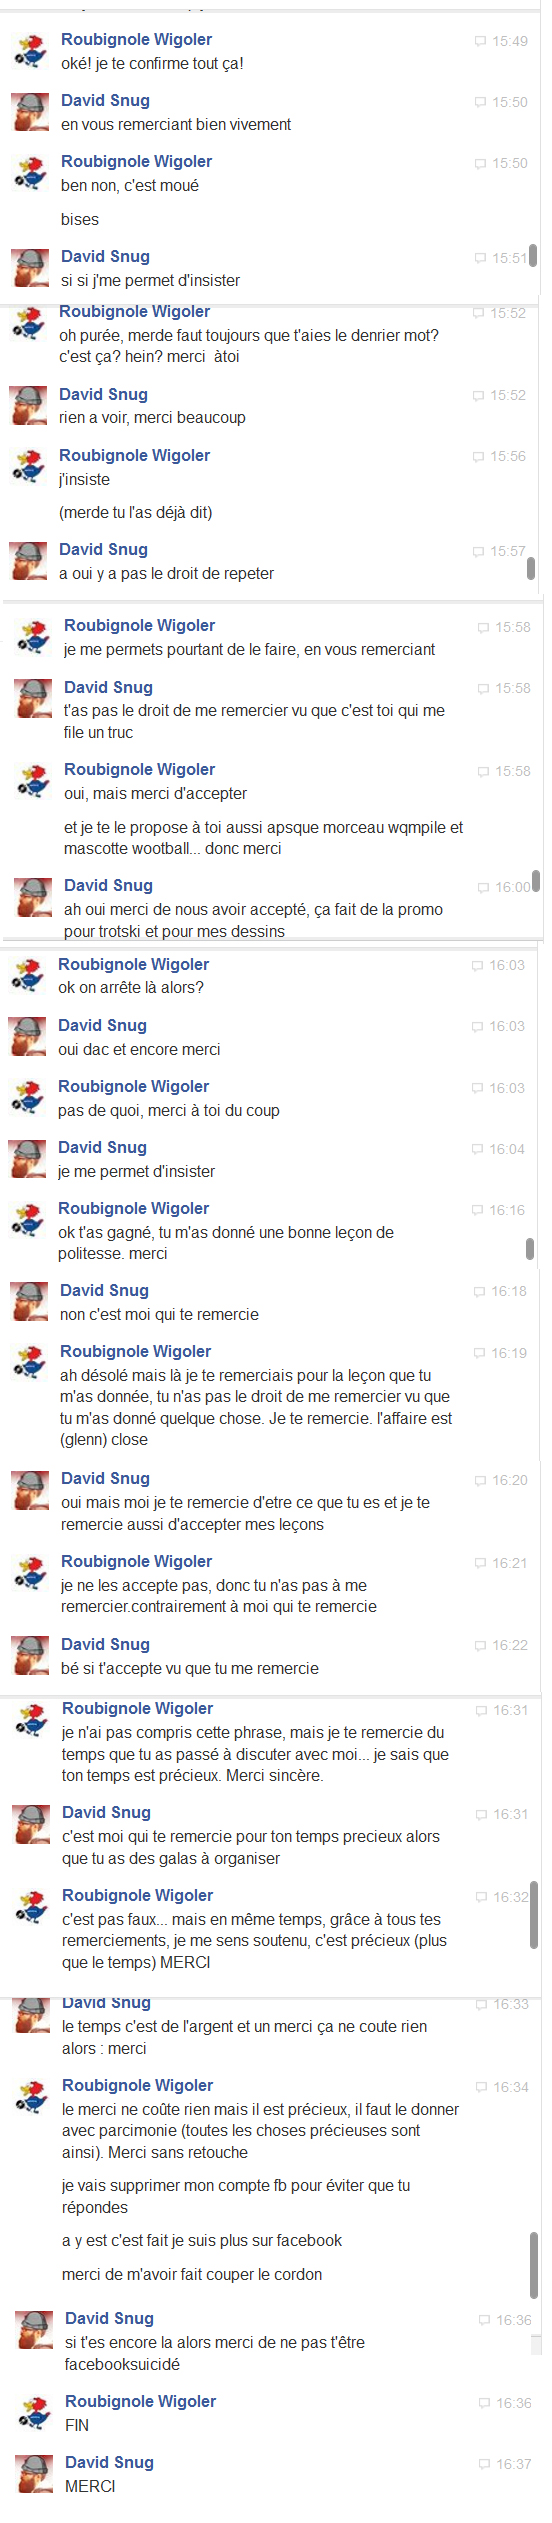 merci snug